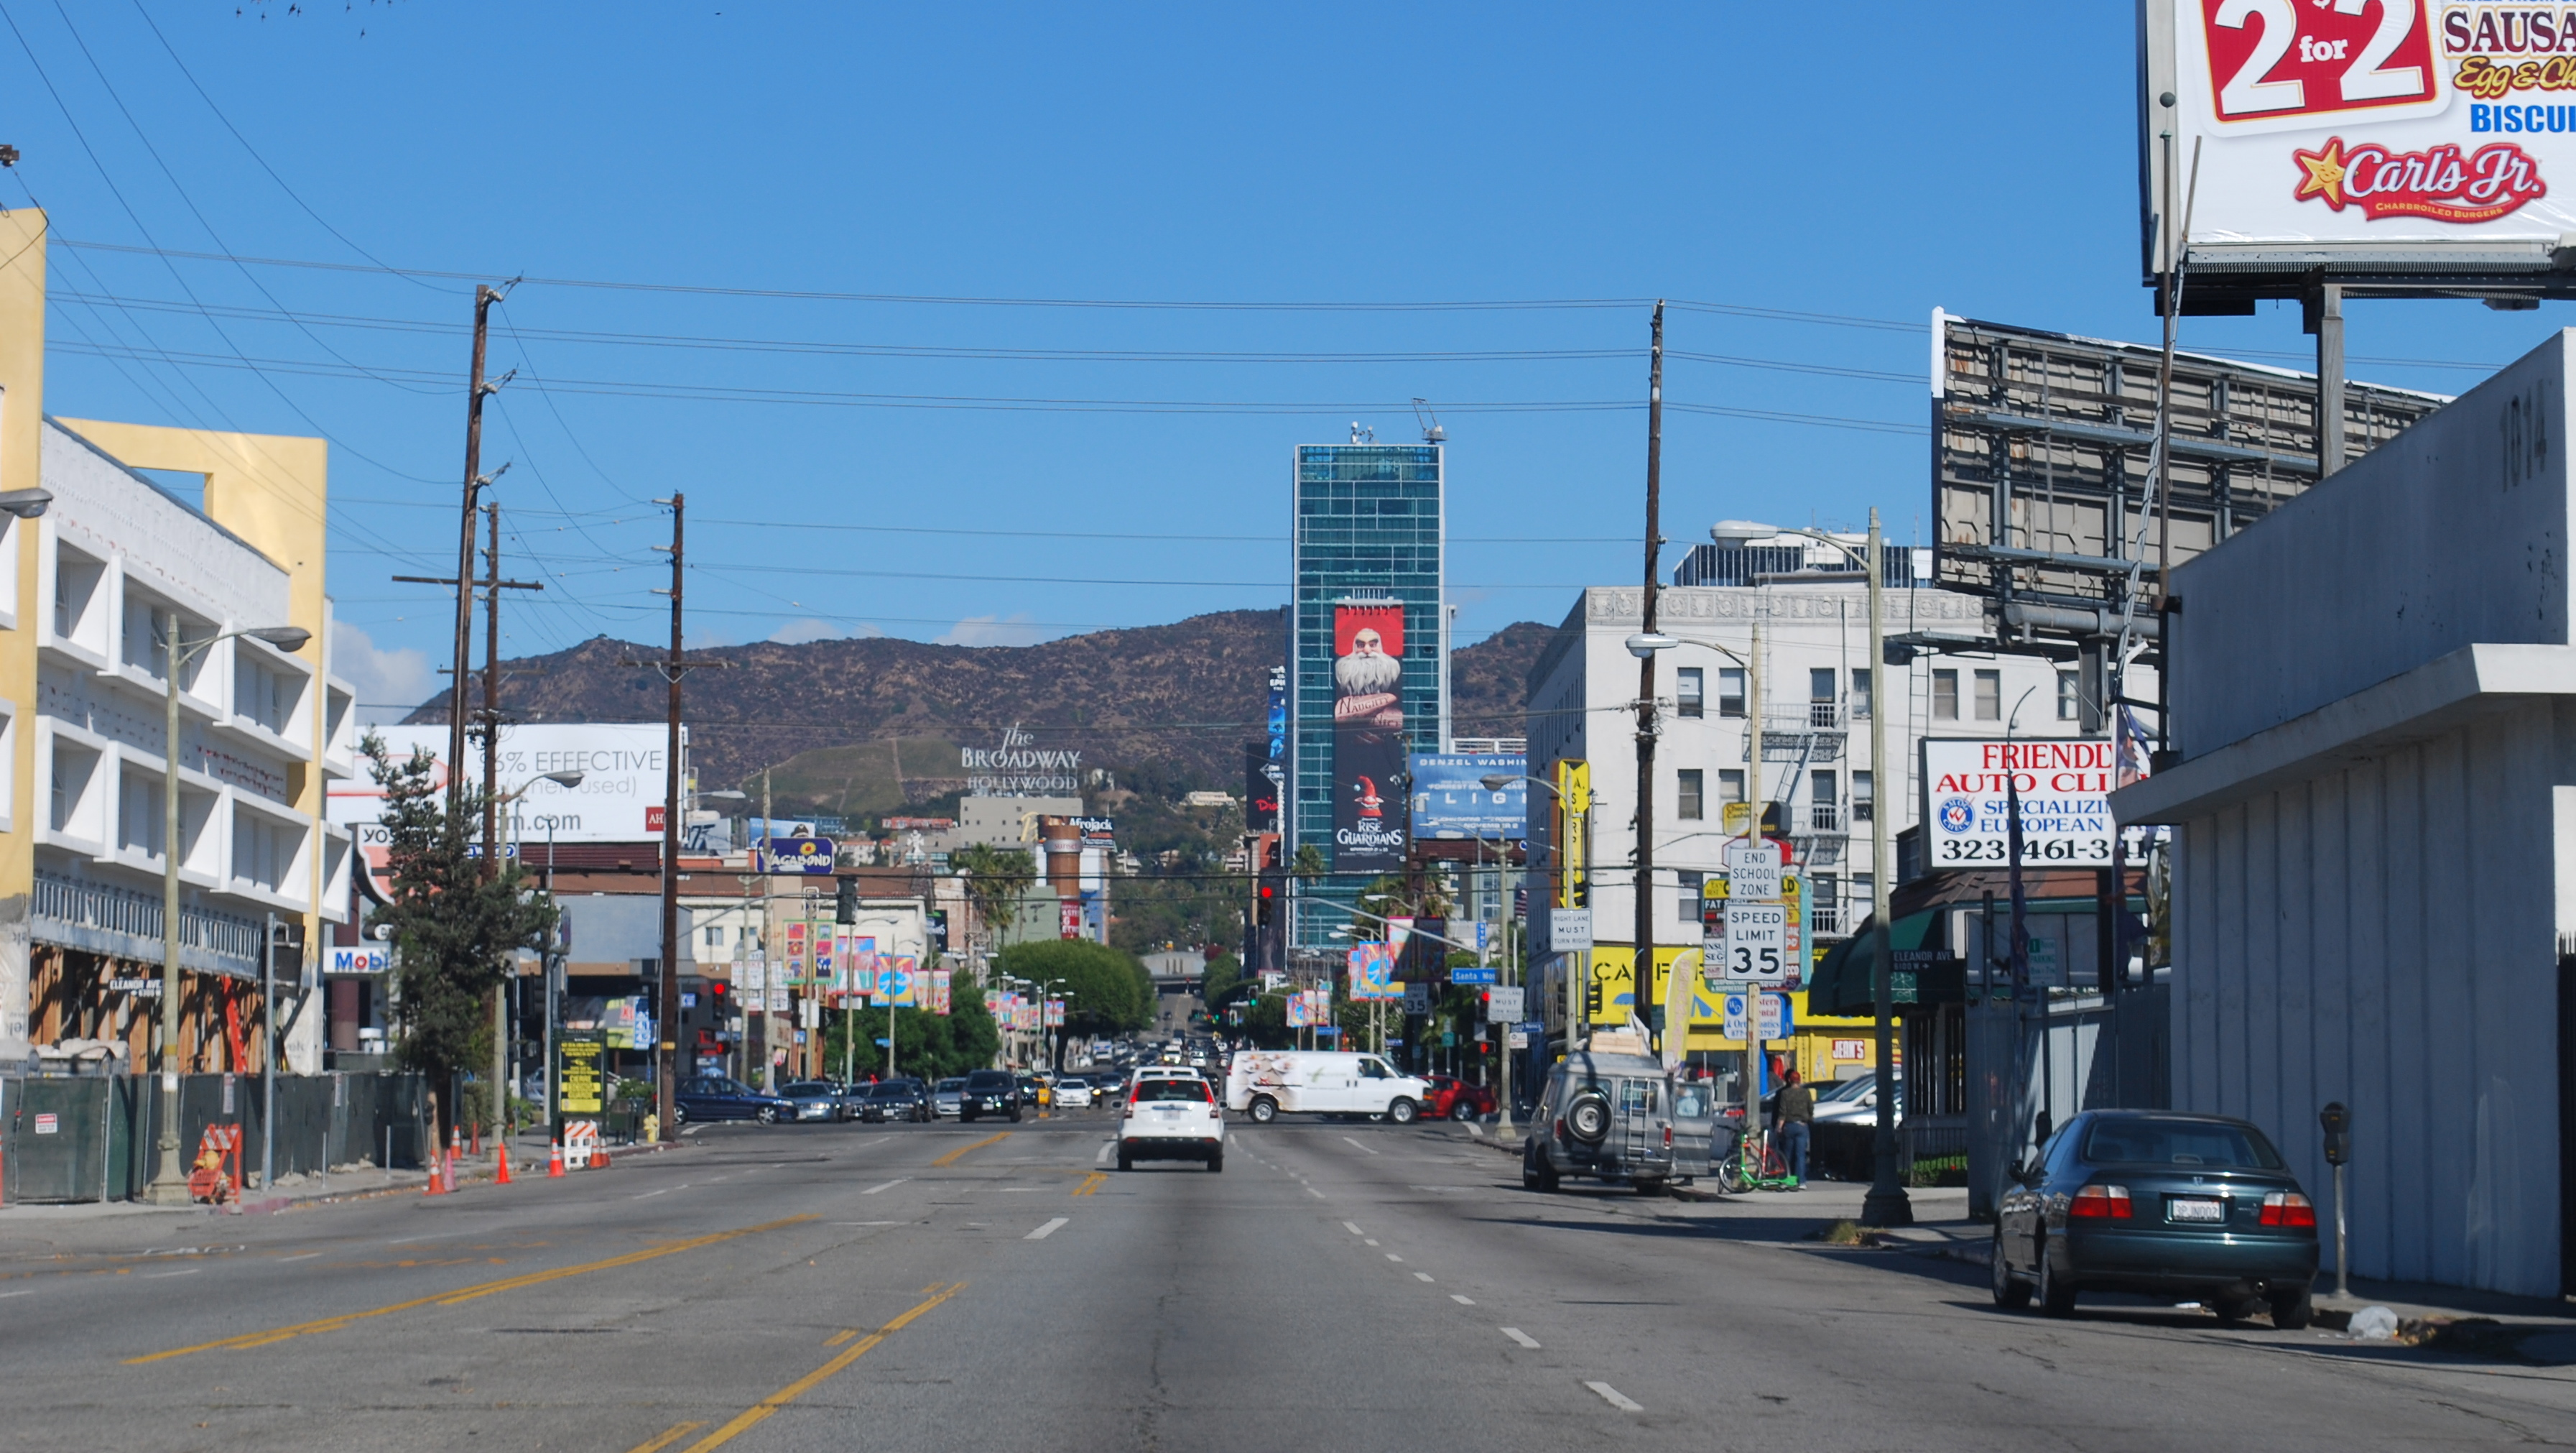 A Short Visit in Los Angeles – A Reflection on Walking